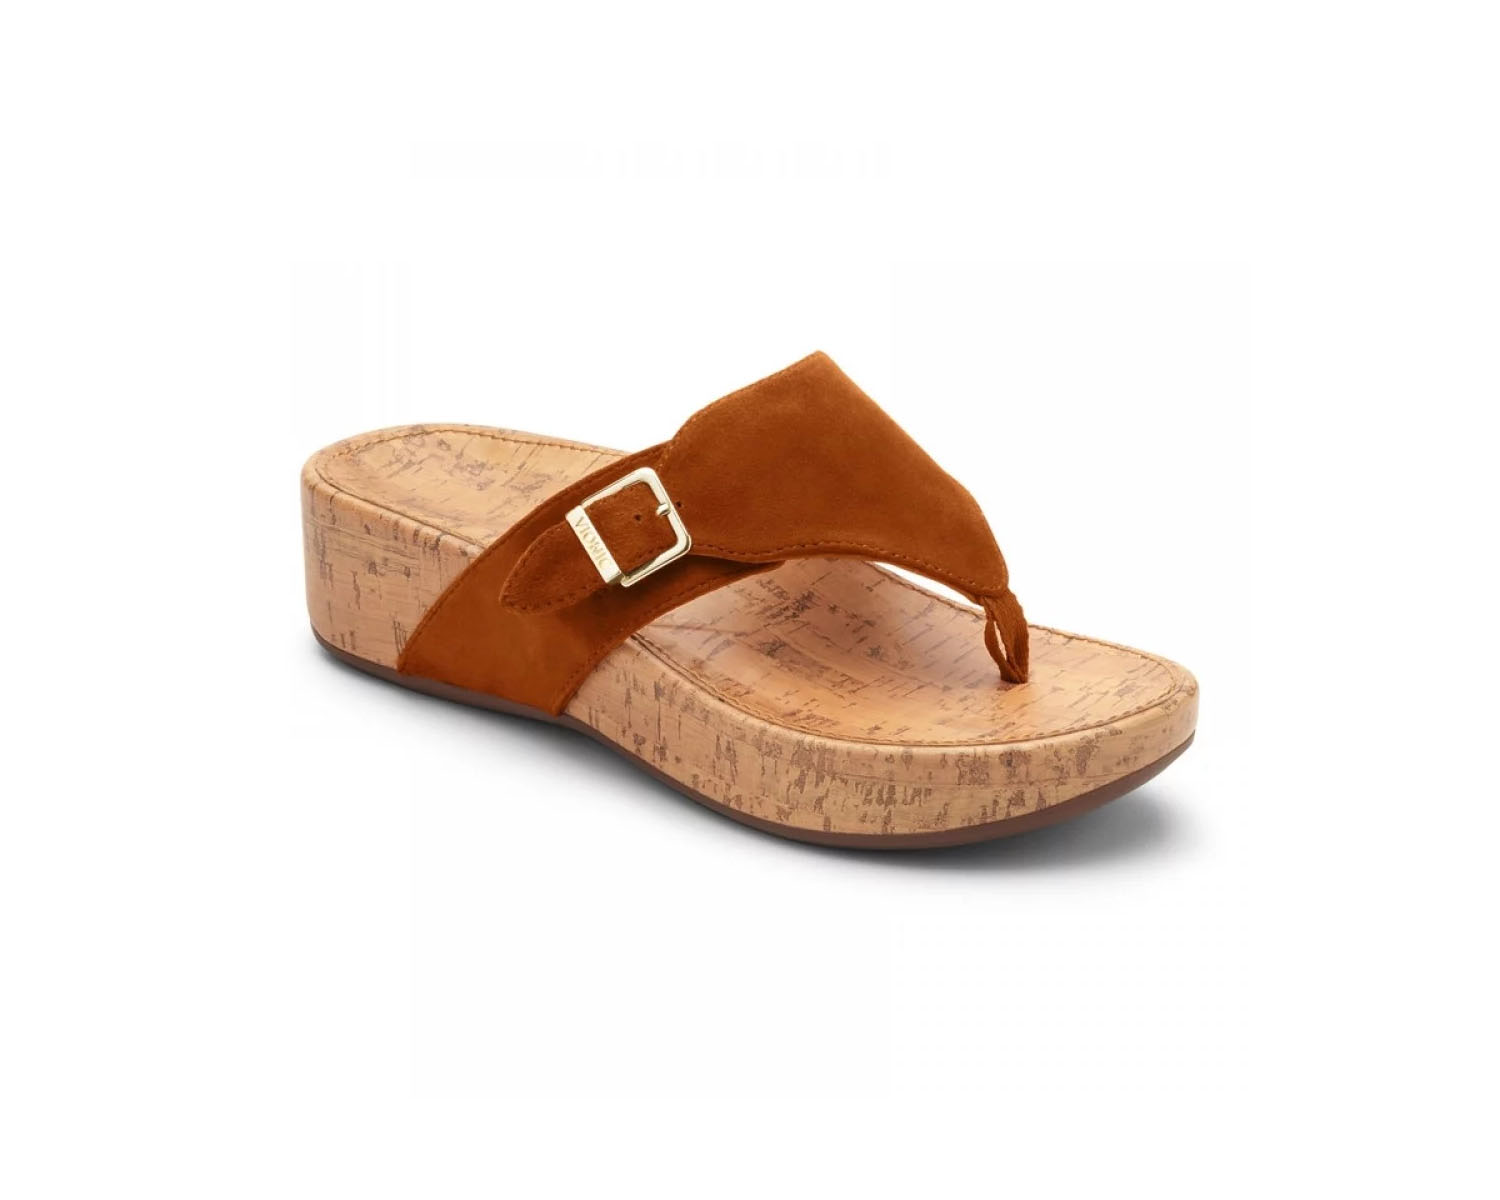 It's time to upgrade your ordinary flip flops. This pair features a cushioned, cork sole with arch support and an adjustable suede upper in rich caramel (shown), red, or black.                                  To buy: $100, vionic.com.